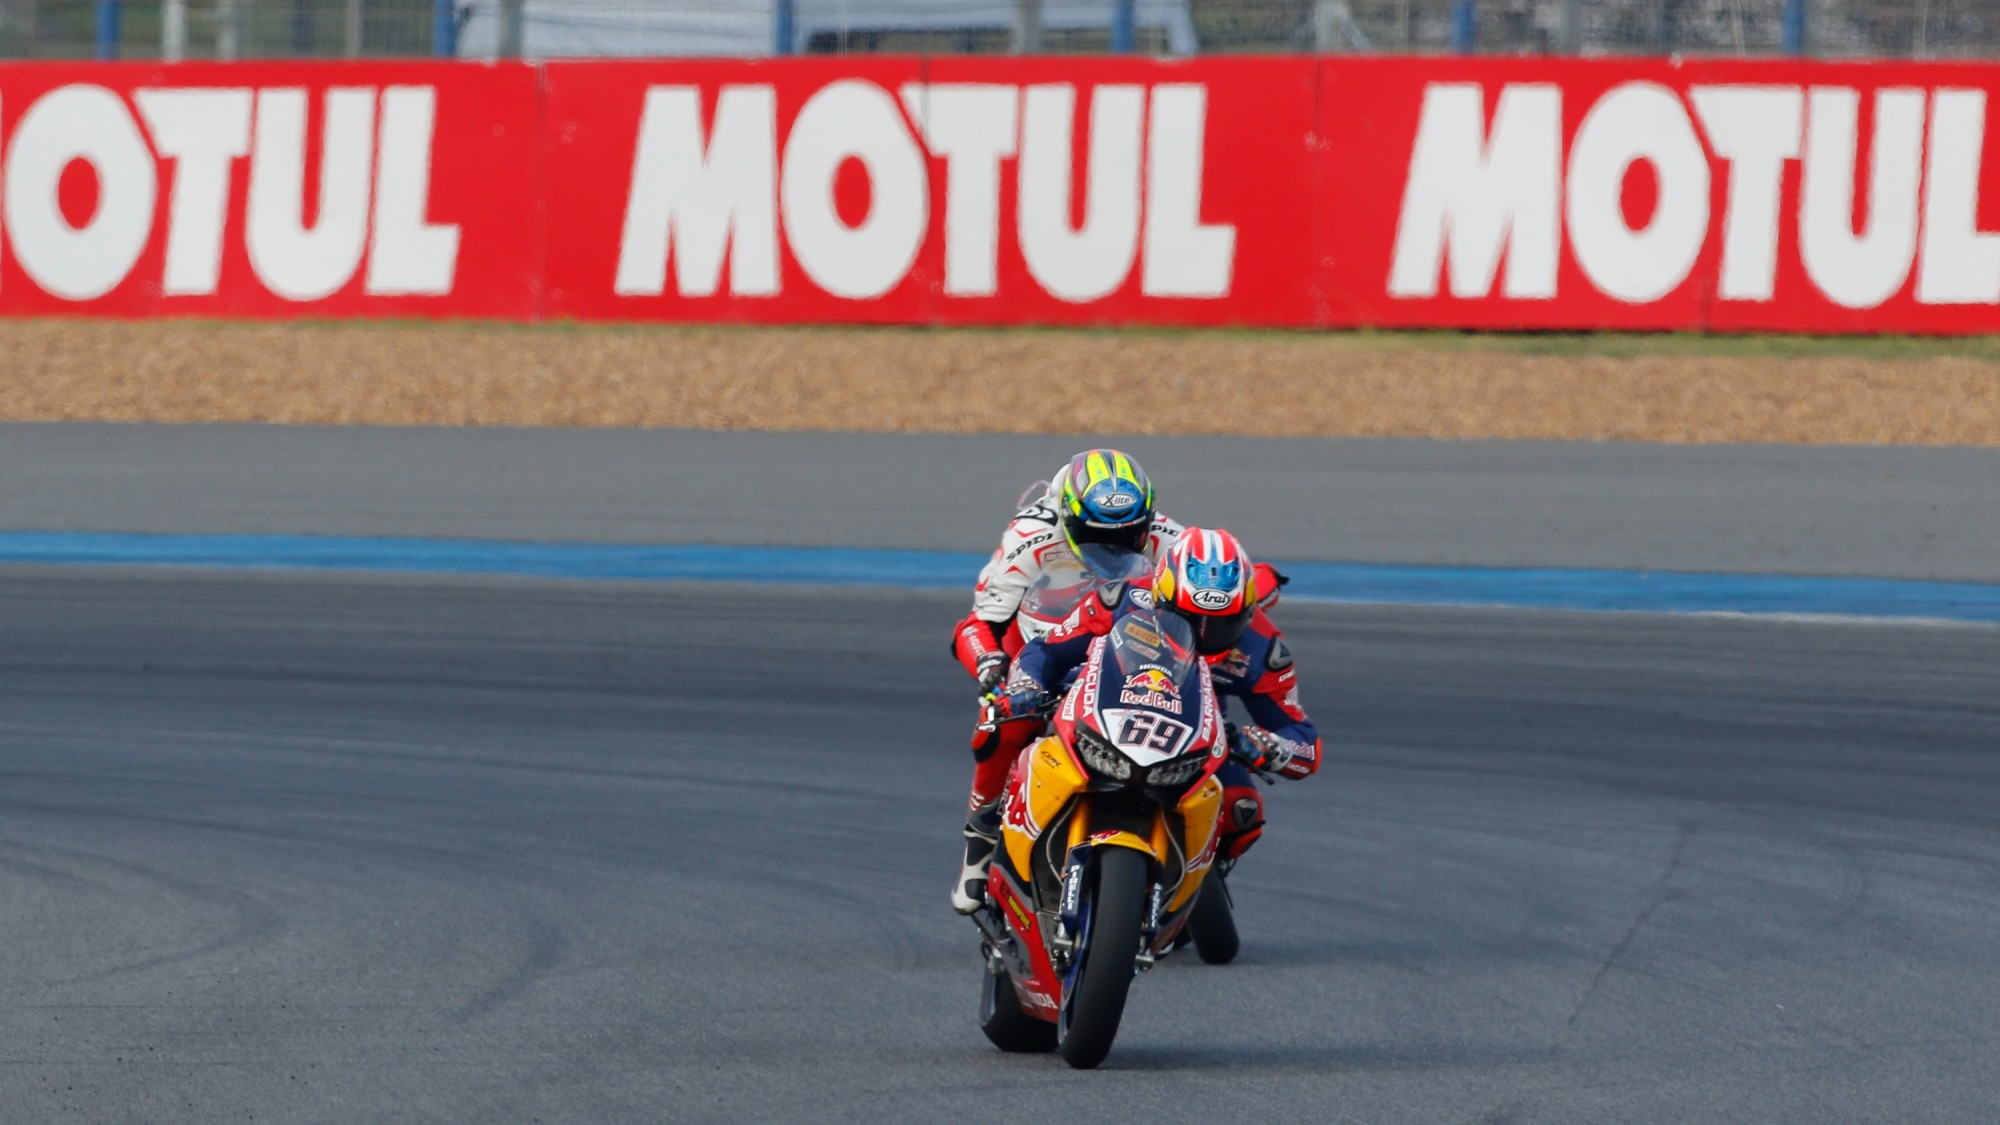 Hayden and Bradl secure two top ten finishes in Thailand